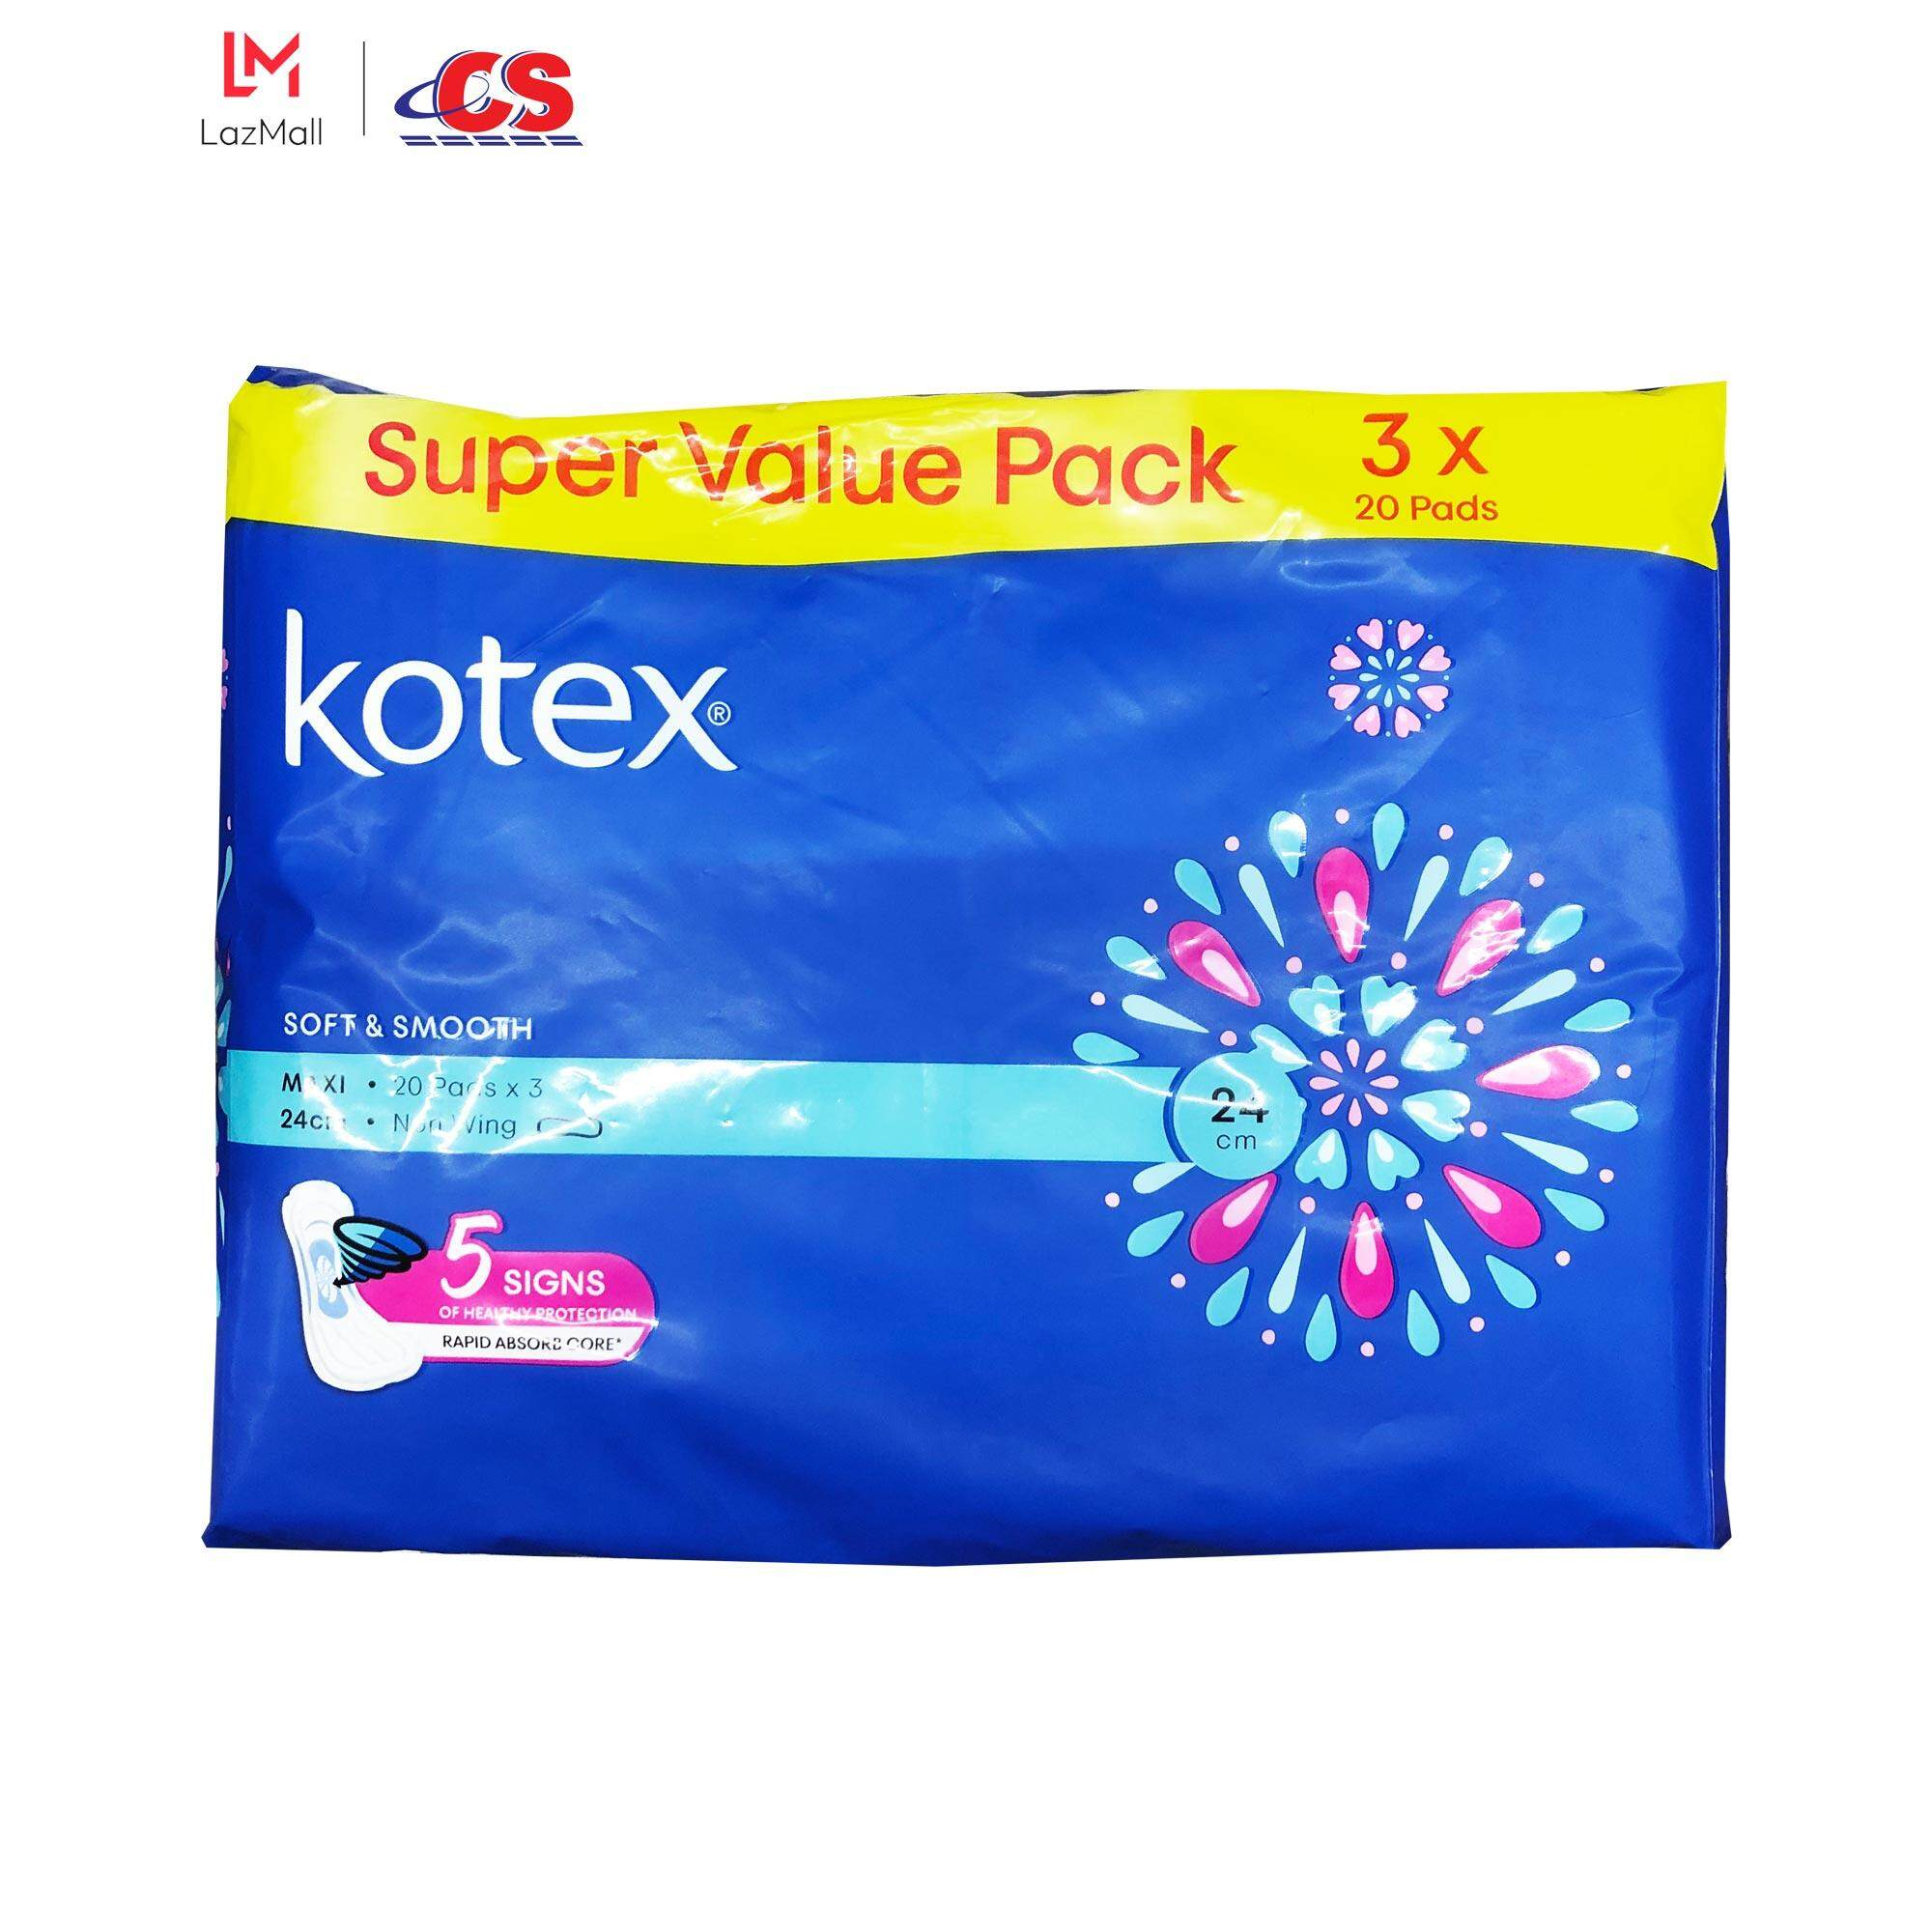 KOTEX Soft and Smooth Maxi Non Wing 24cm 3x20s